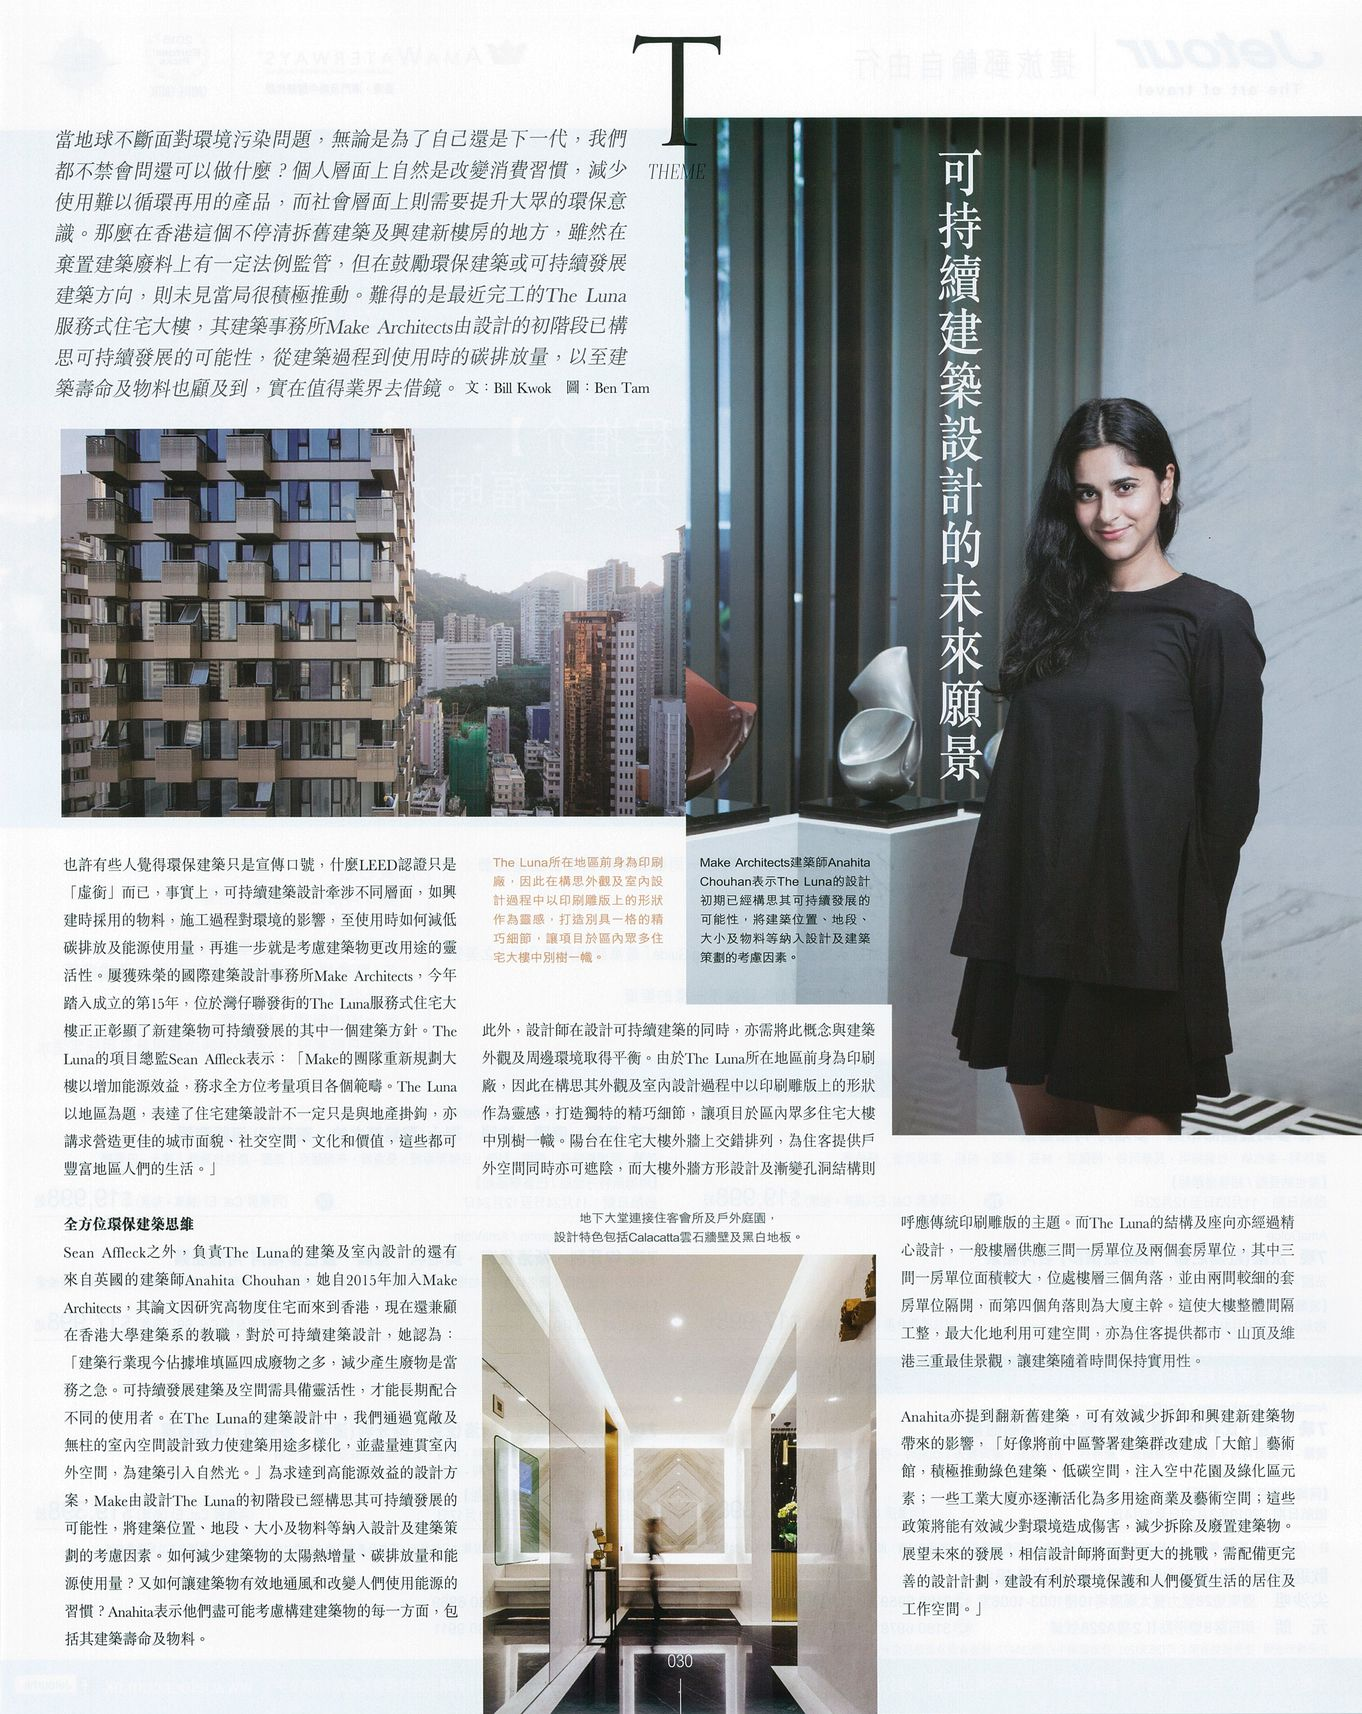 MAKE_TheLuna_LifestyleJournal_ Anahita Chouhan Architect Designer Hong Kong 10Sep2018_1.jpg